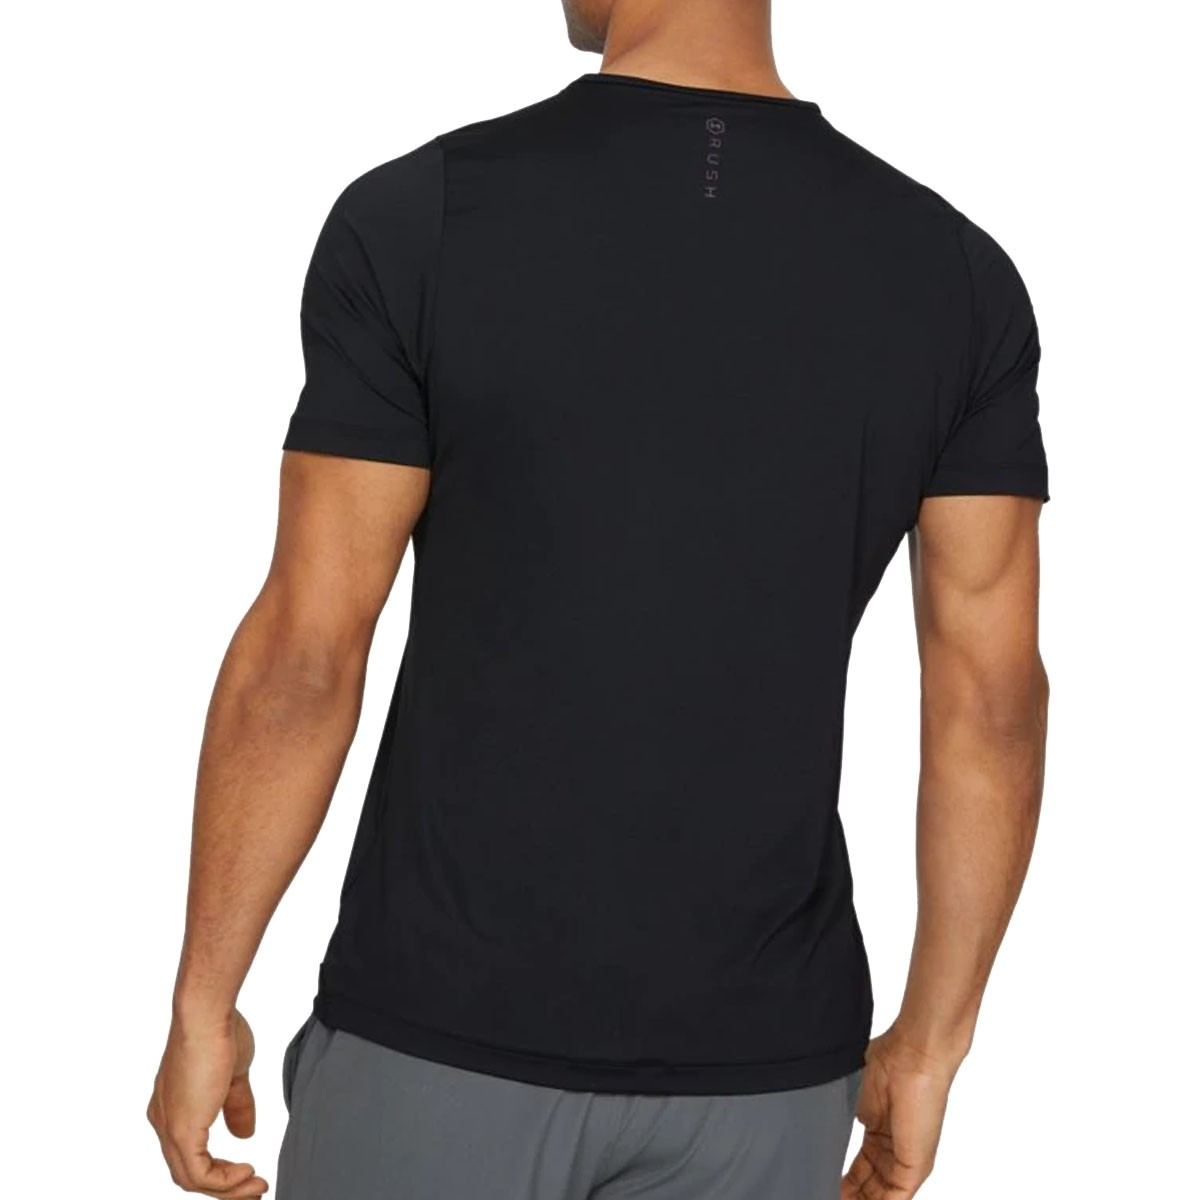 Under Armour  Rush Fitted T-shirt 'Black'-1327641-001